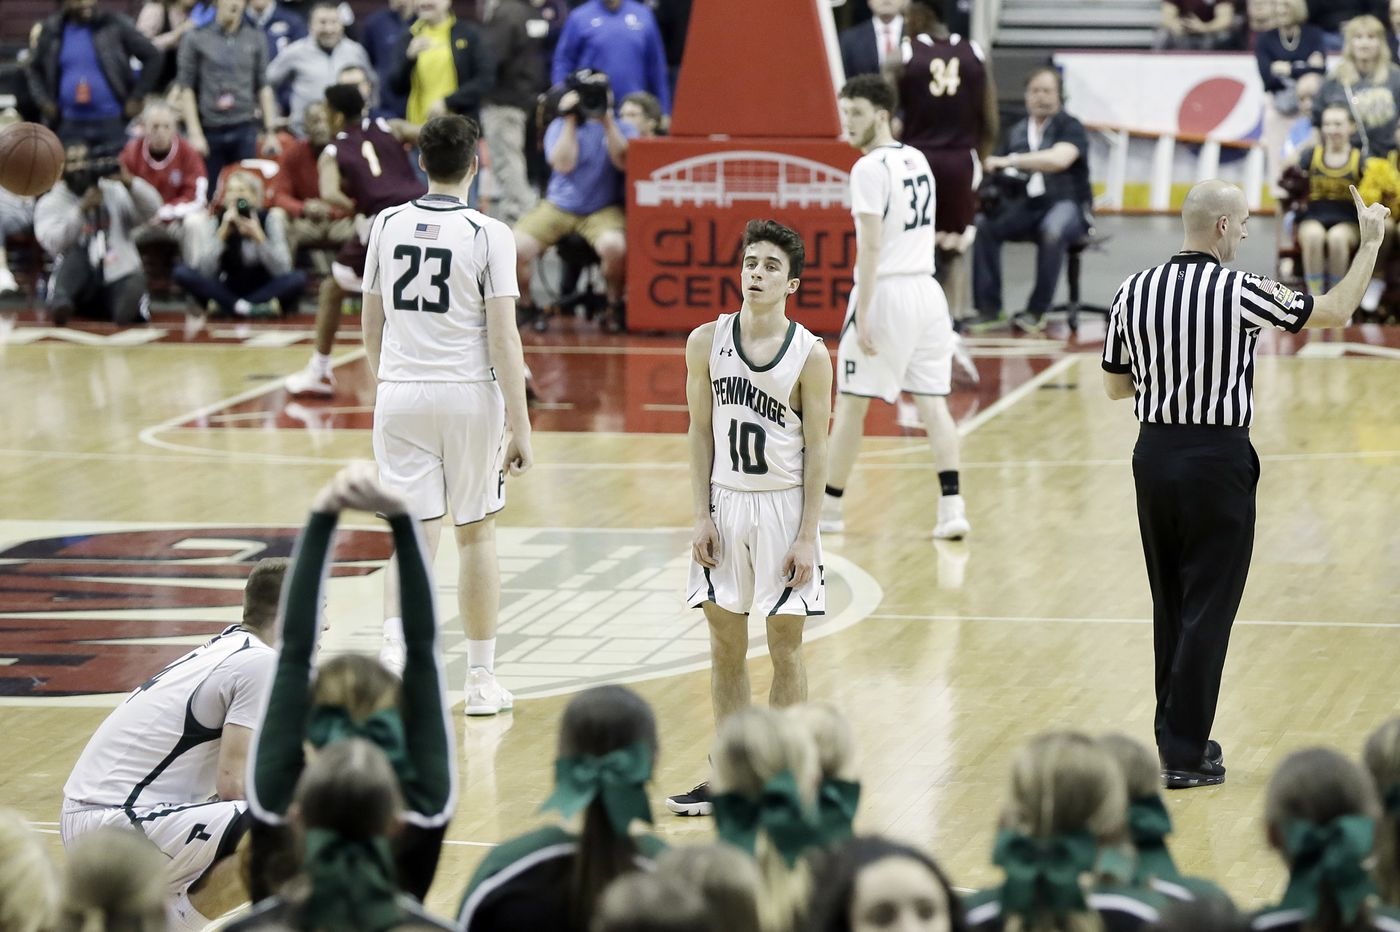 Pennridge loses PIAA state championship to Kennedy Catholic in double-overtime thriller